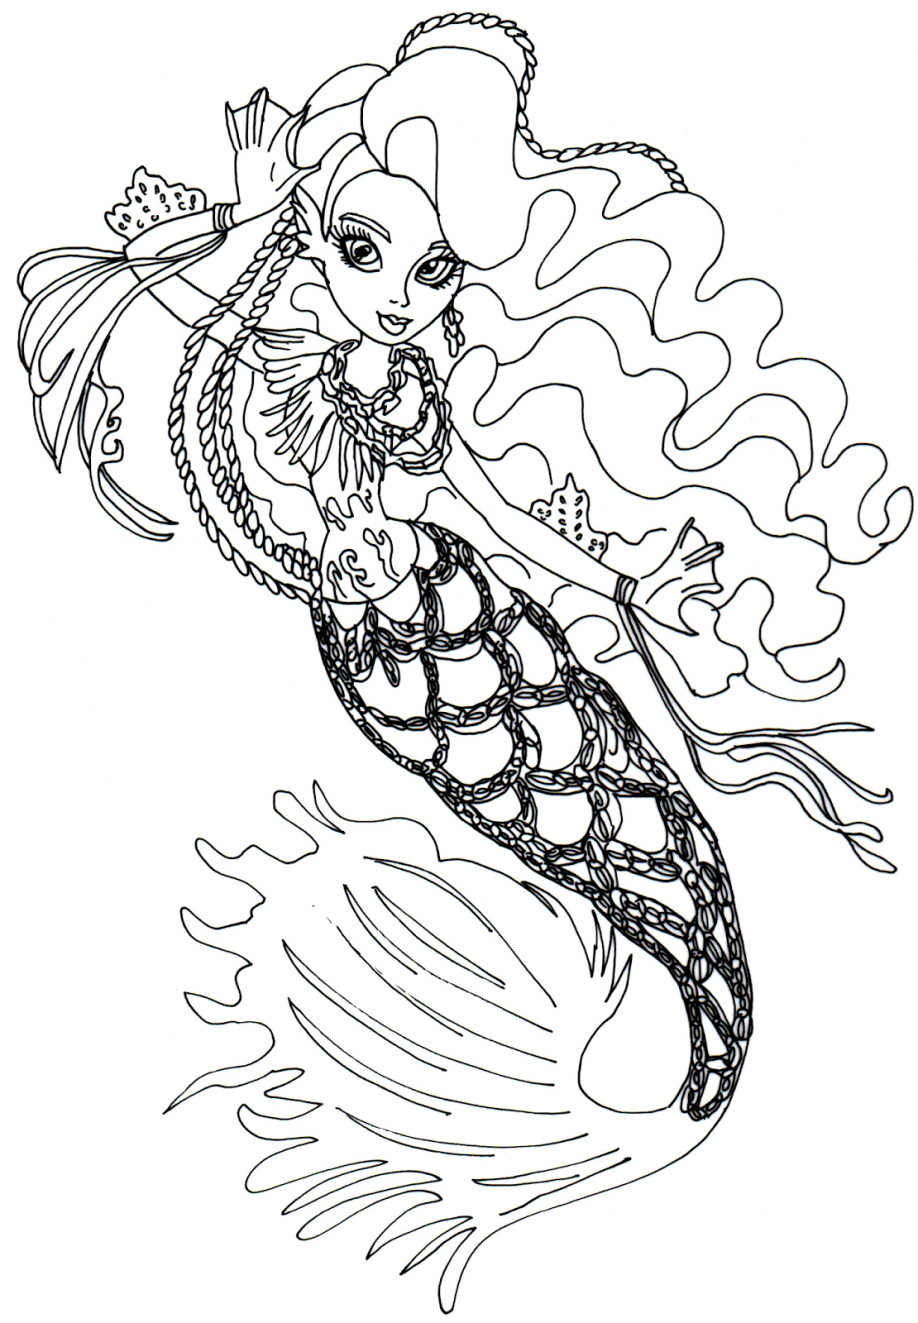 Monster High 13 Wishes Coloring Pages Free Monster High High Coloring Pages 13 Wishes